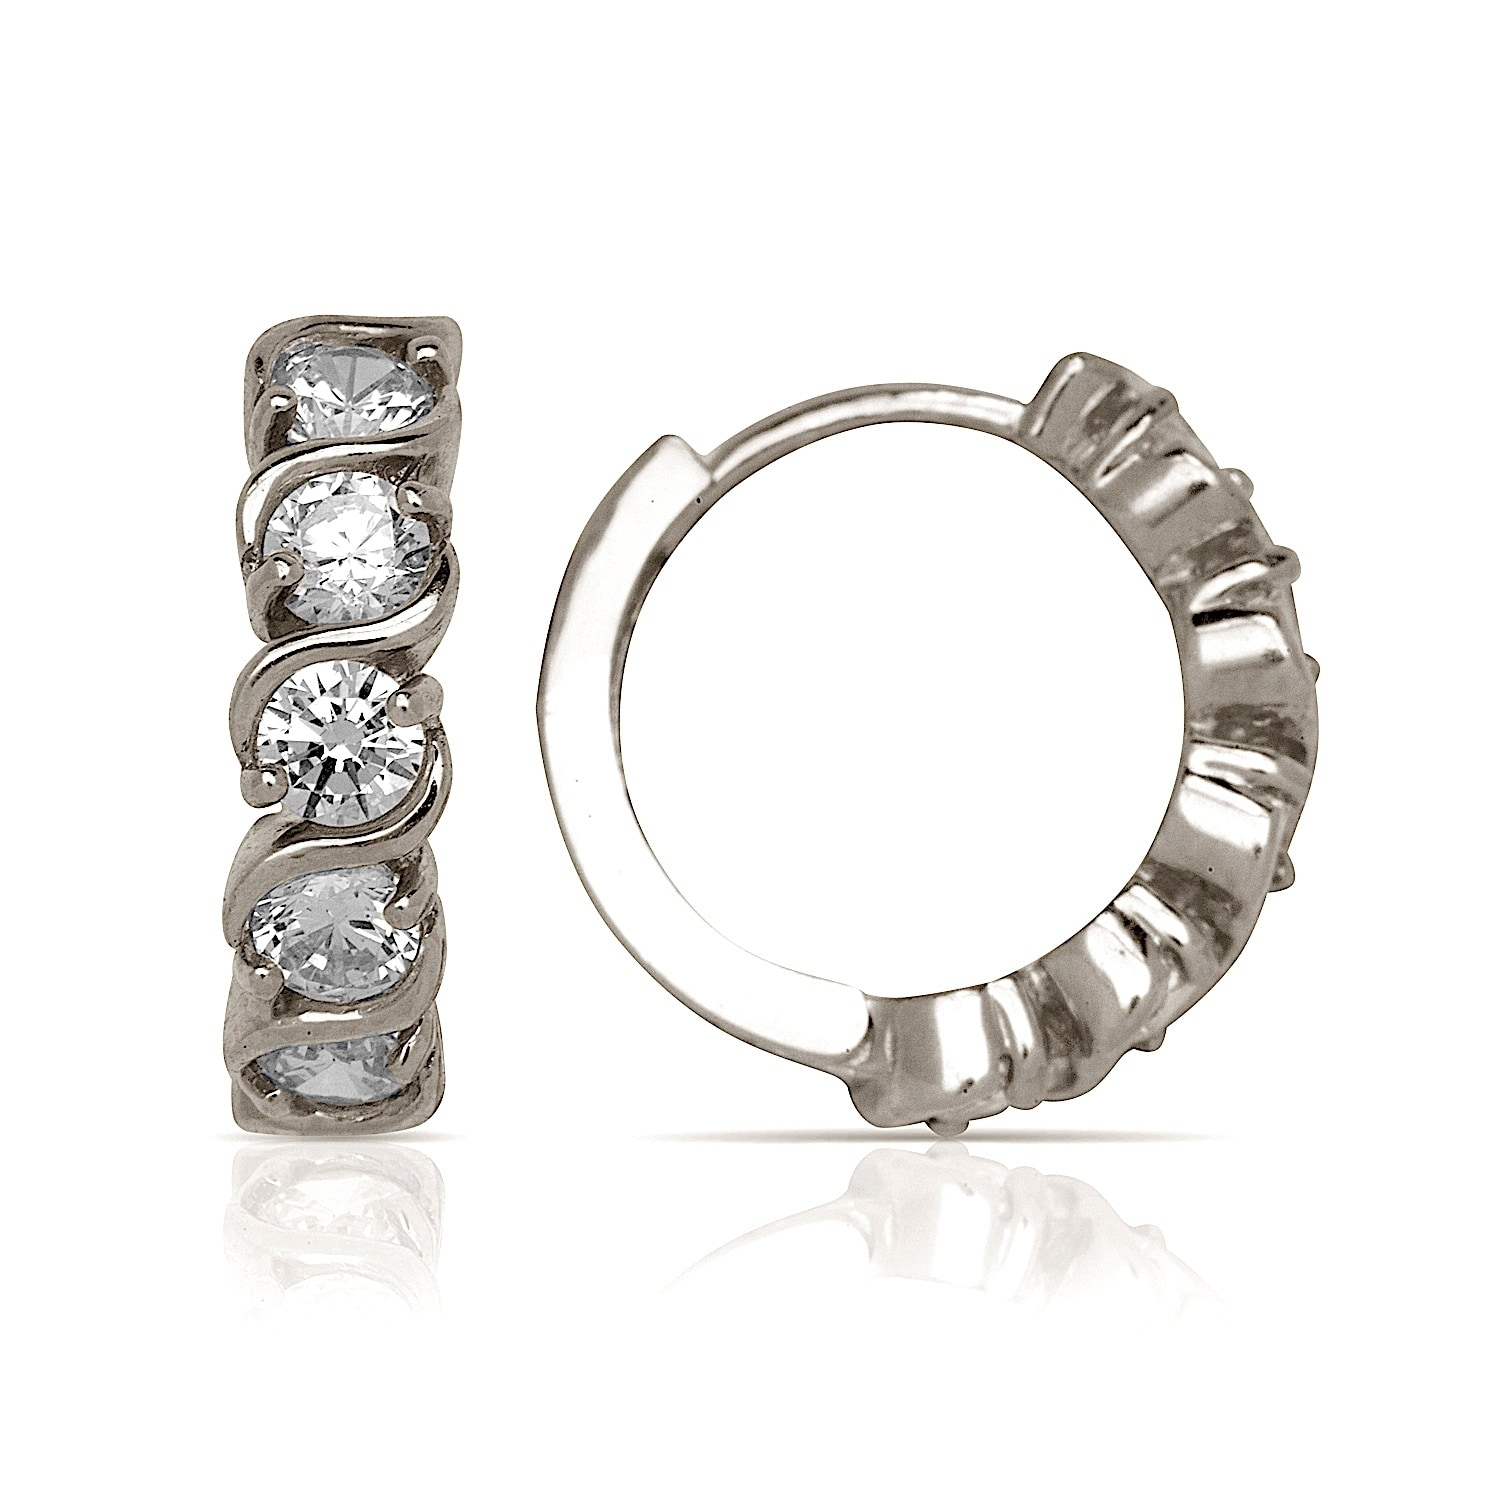 14k Gold Cubic Zirconia S Design Hinged Hoop Earrings 4mm X 14mm Yellow Or White